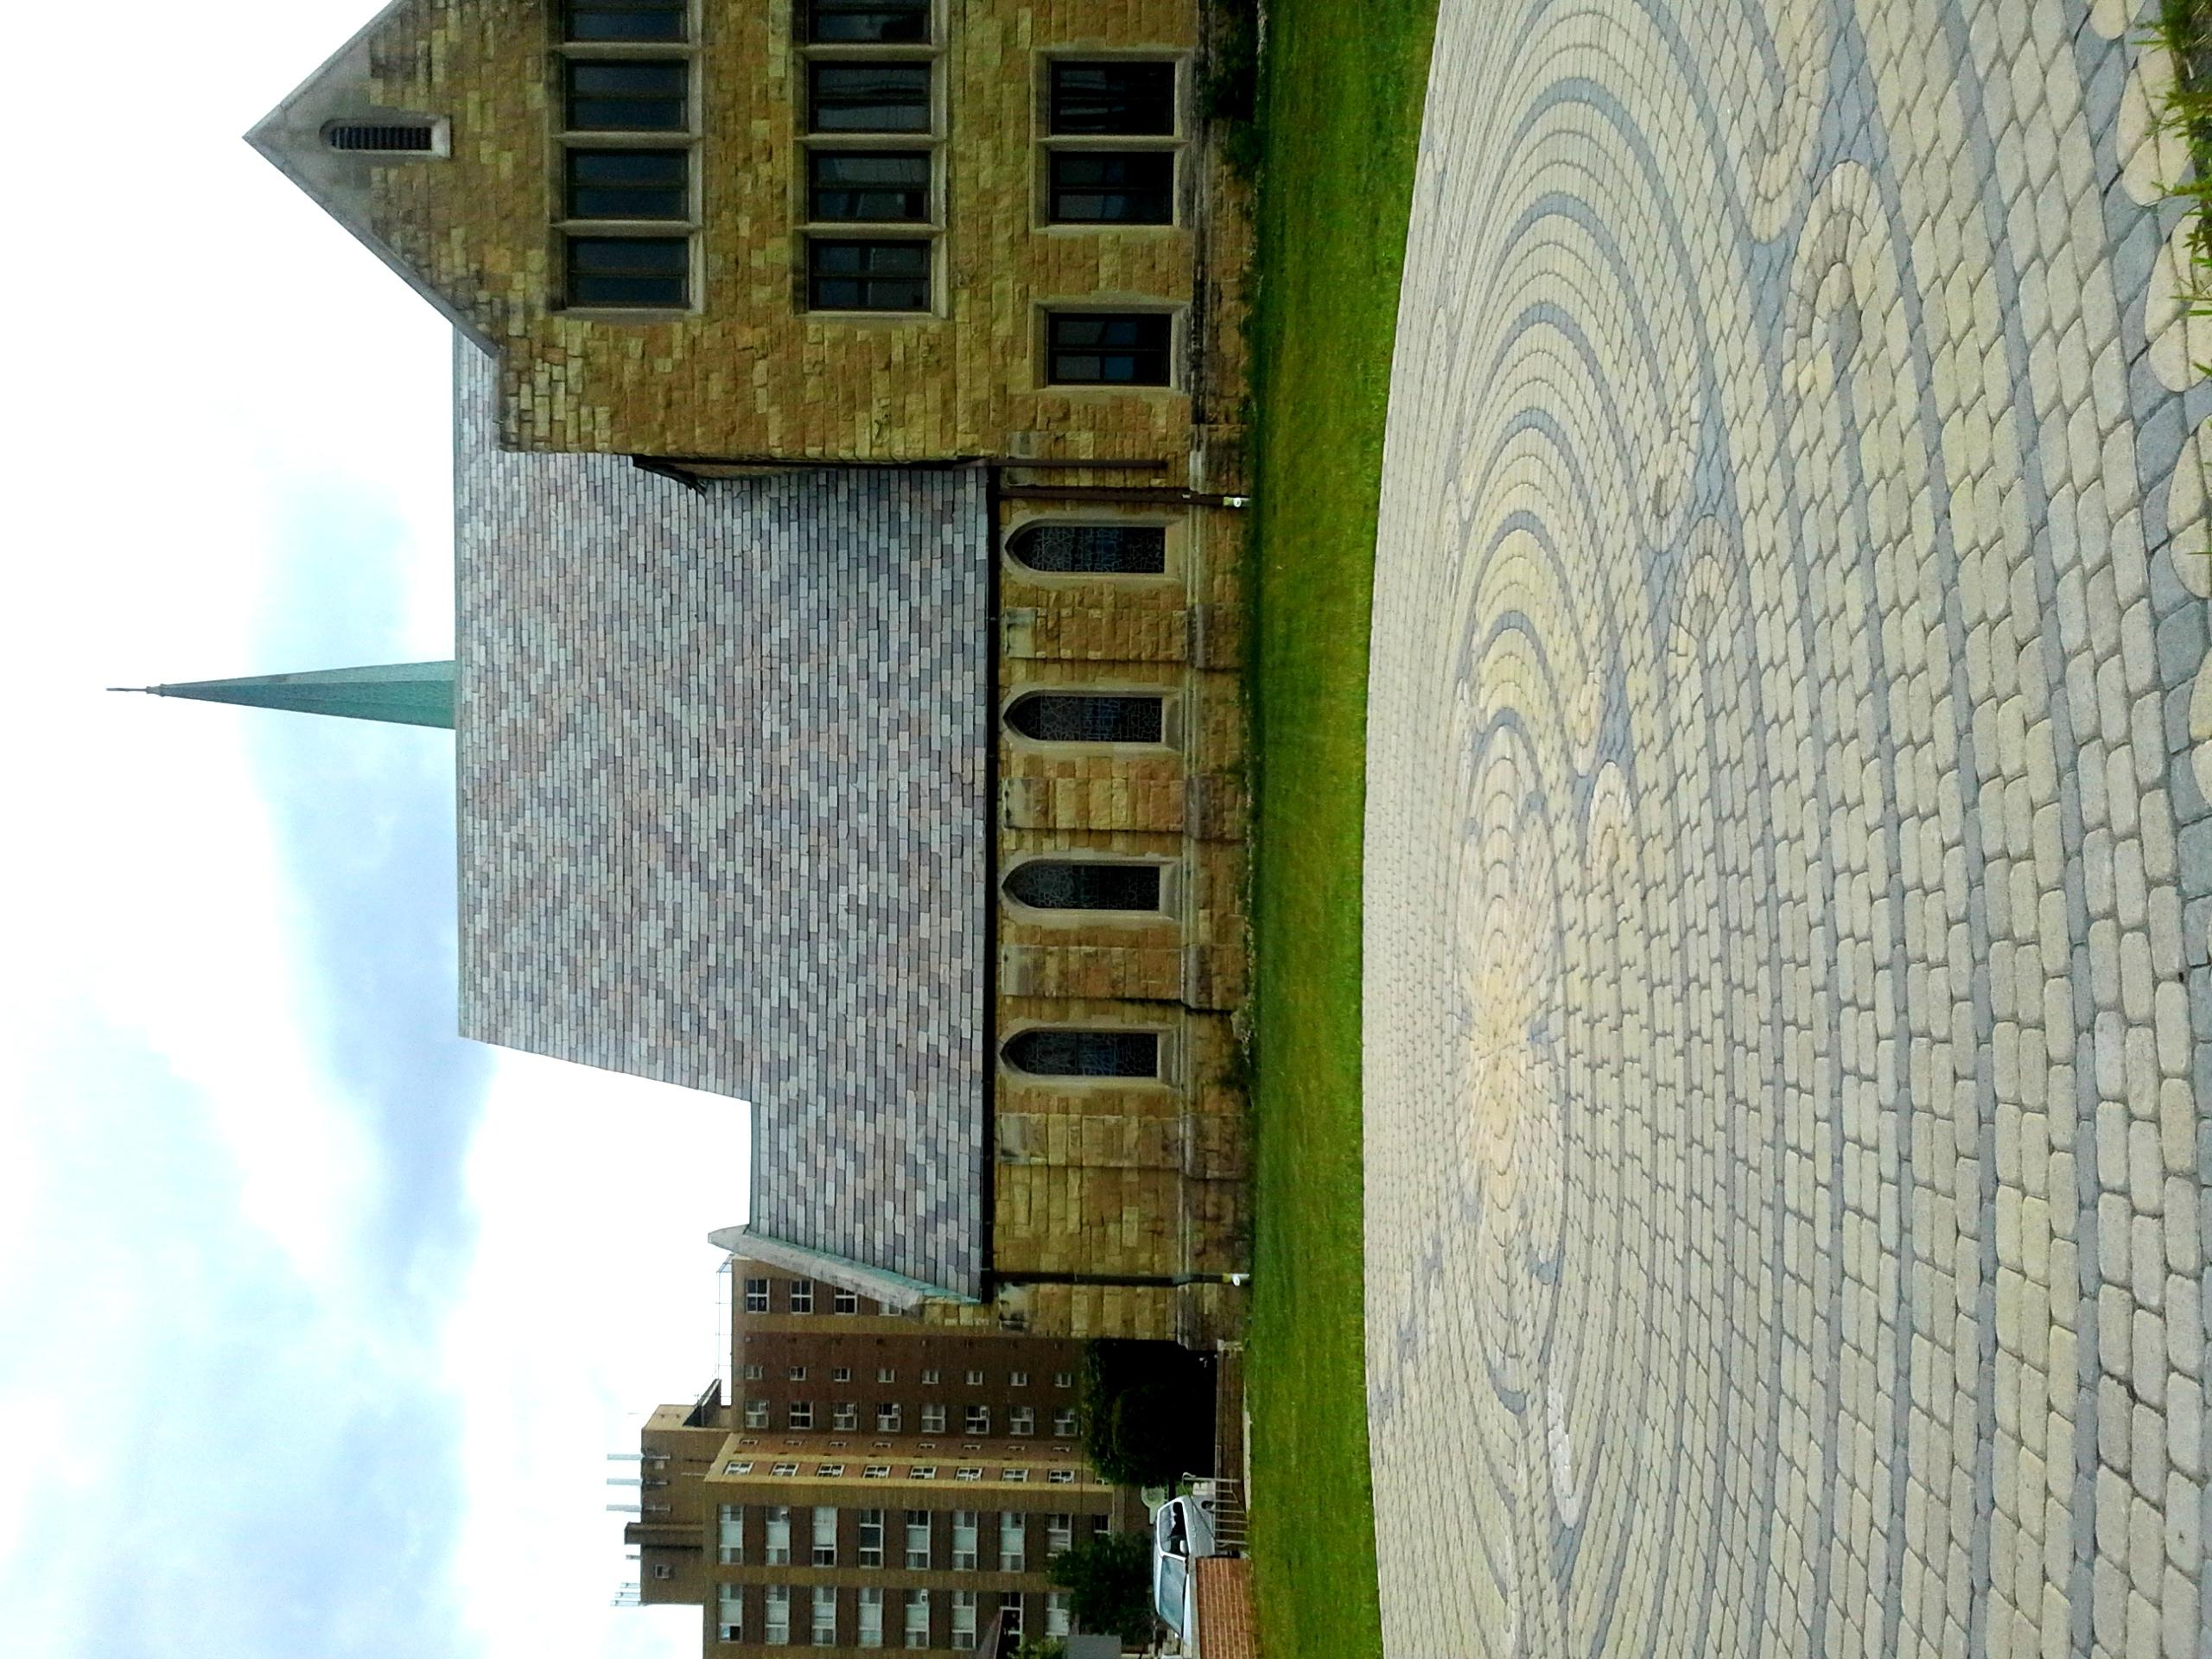 The labyrinth is on the corner of Berry and Broadway streets.